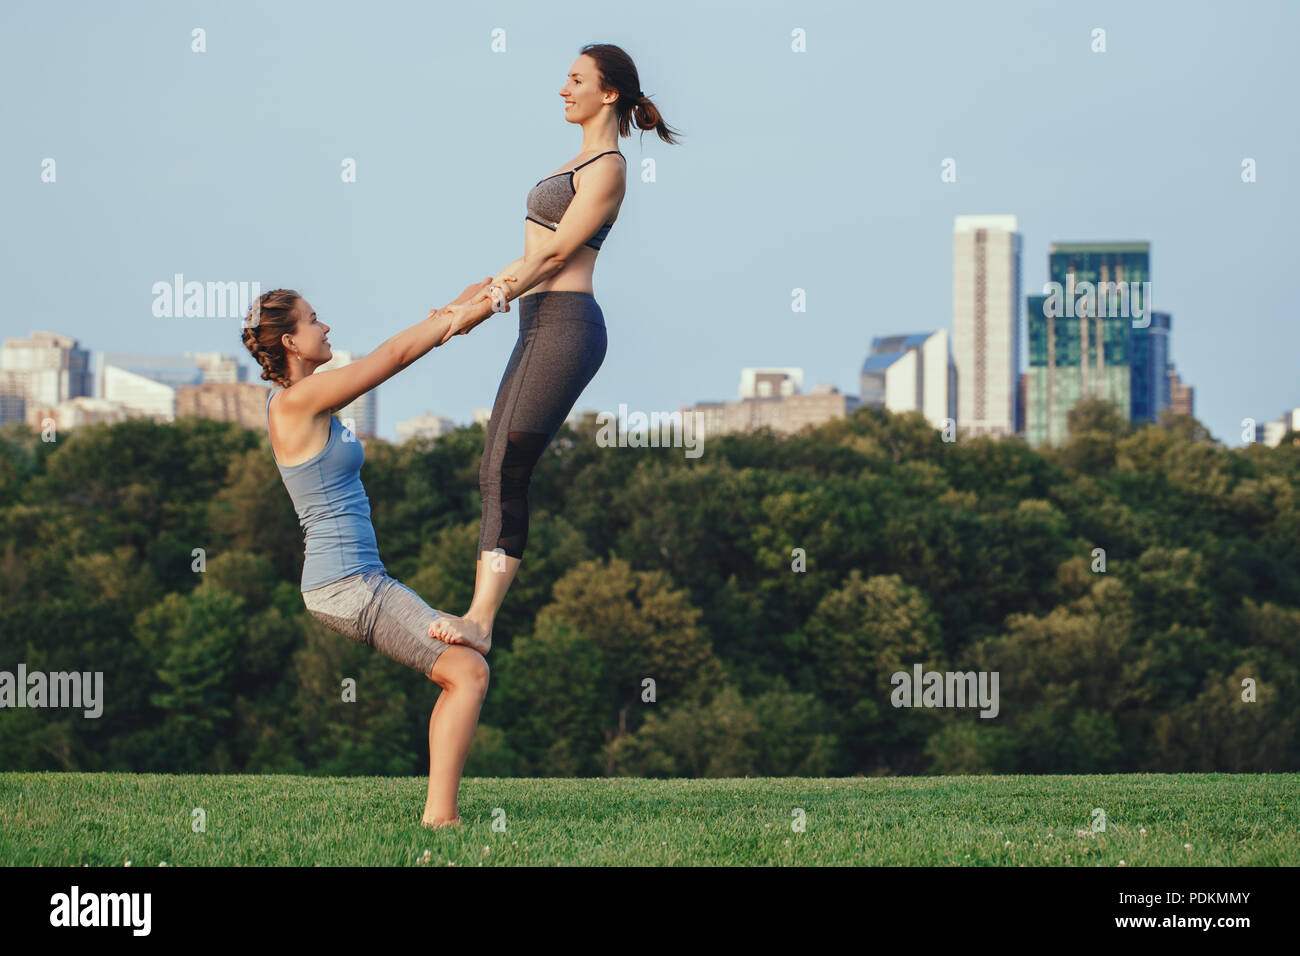 Two young beautiful Caucasian women yogi doing thigh stand acro yoga pose. Women doing stretching workout in park outdoors at sunset. Healthy lifestyl - Stock Image